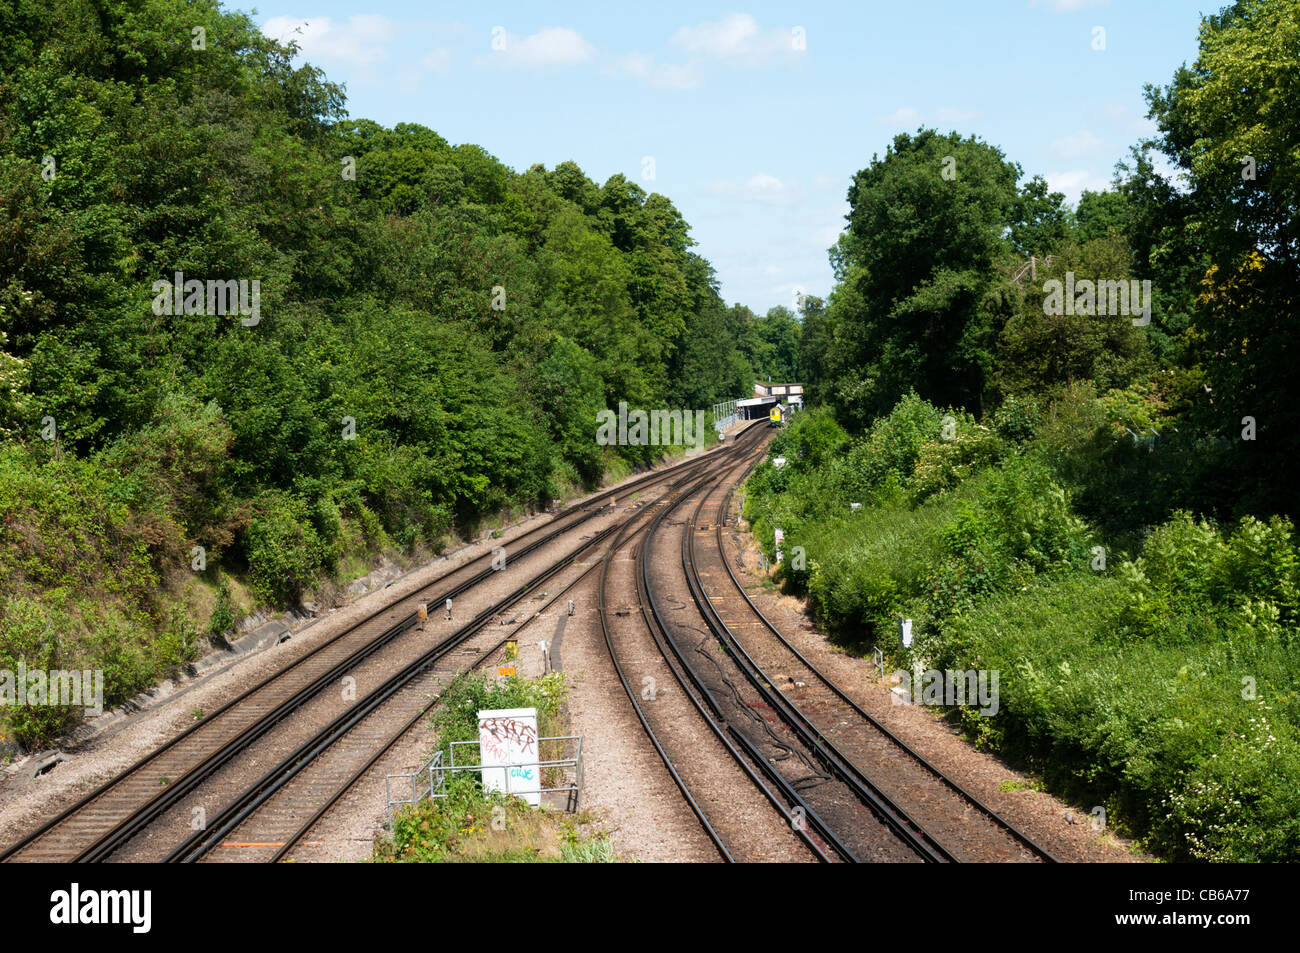 Railway lines outside Ravensbourne station (in background) on the line between London and Sevenoaks in Kent. - Stock Image